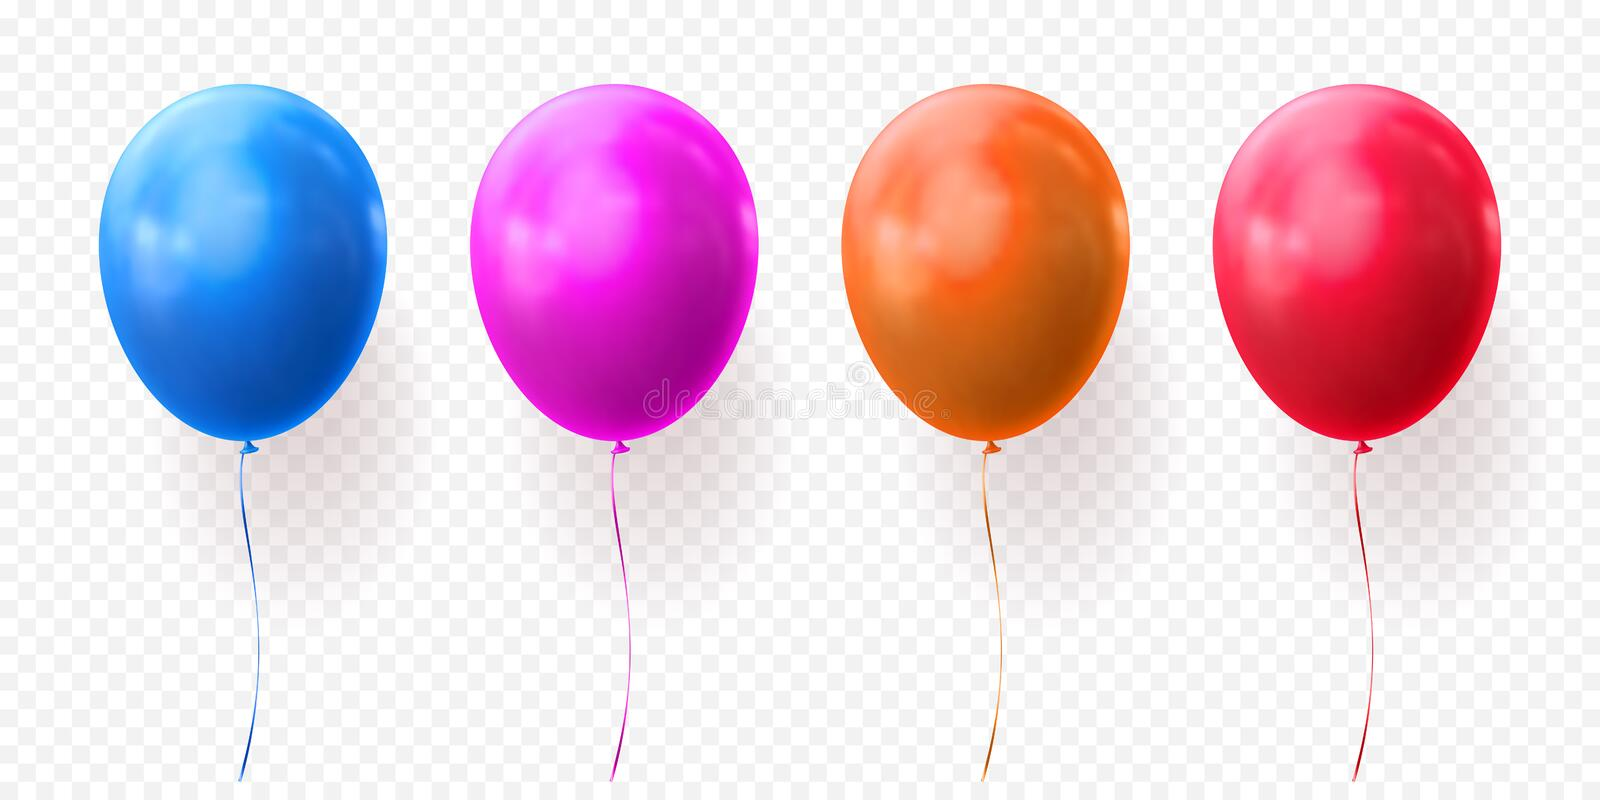 Colorful balloons vector transparent background glossy realistic baloons for Birthday party stock illustration